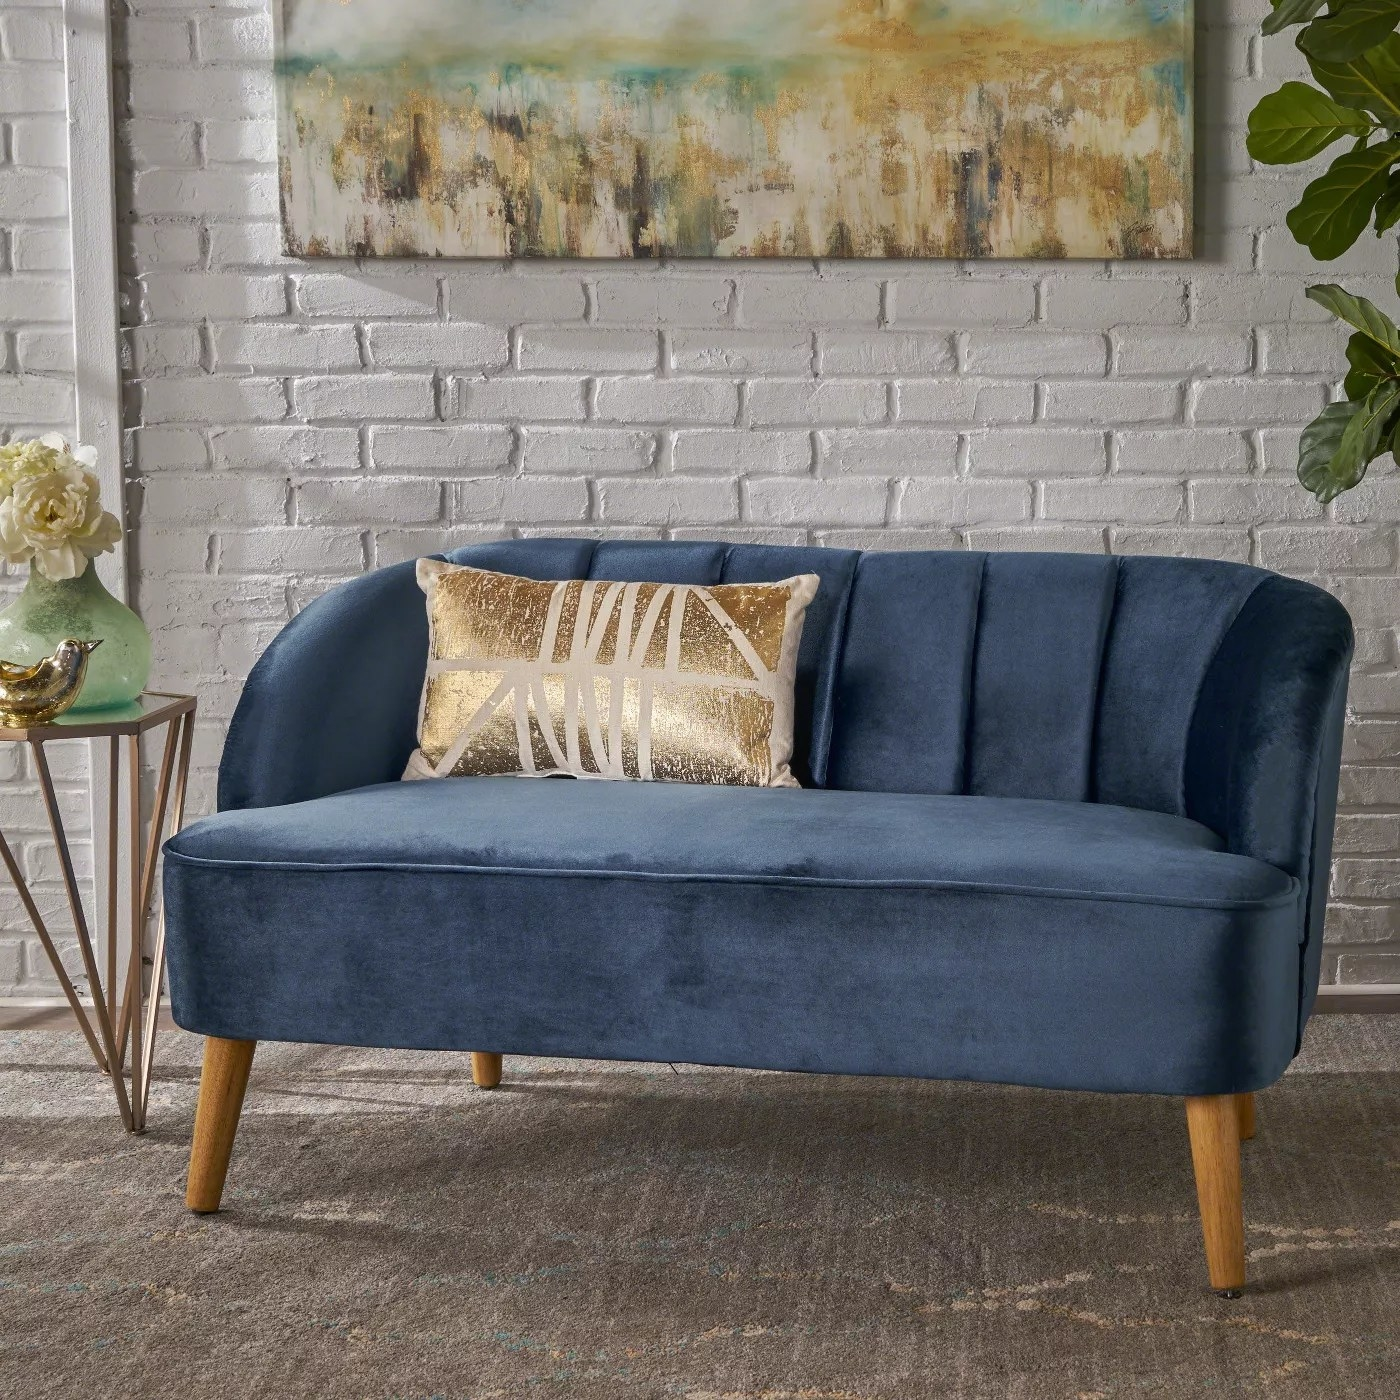 The couch in blue